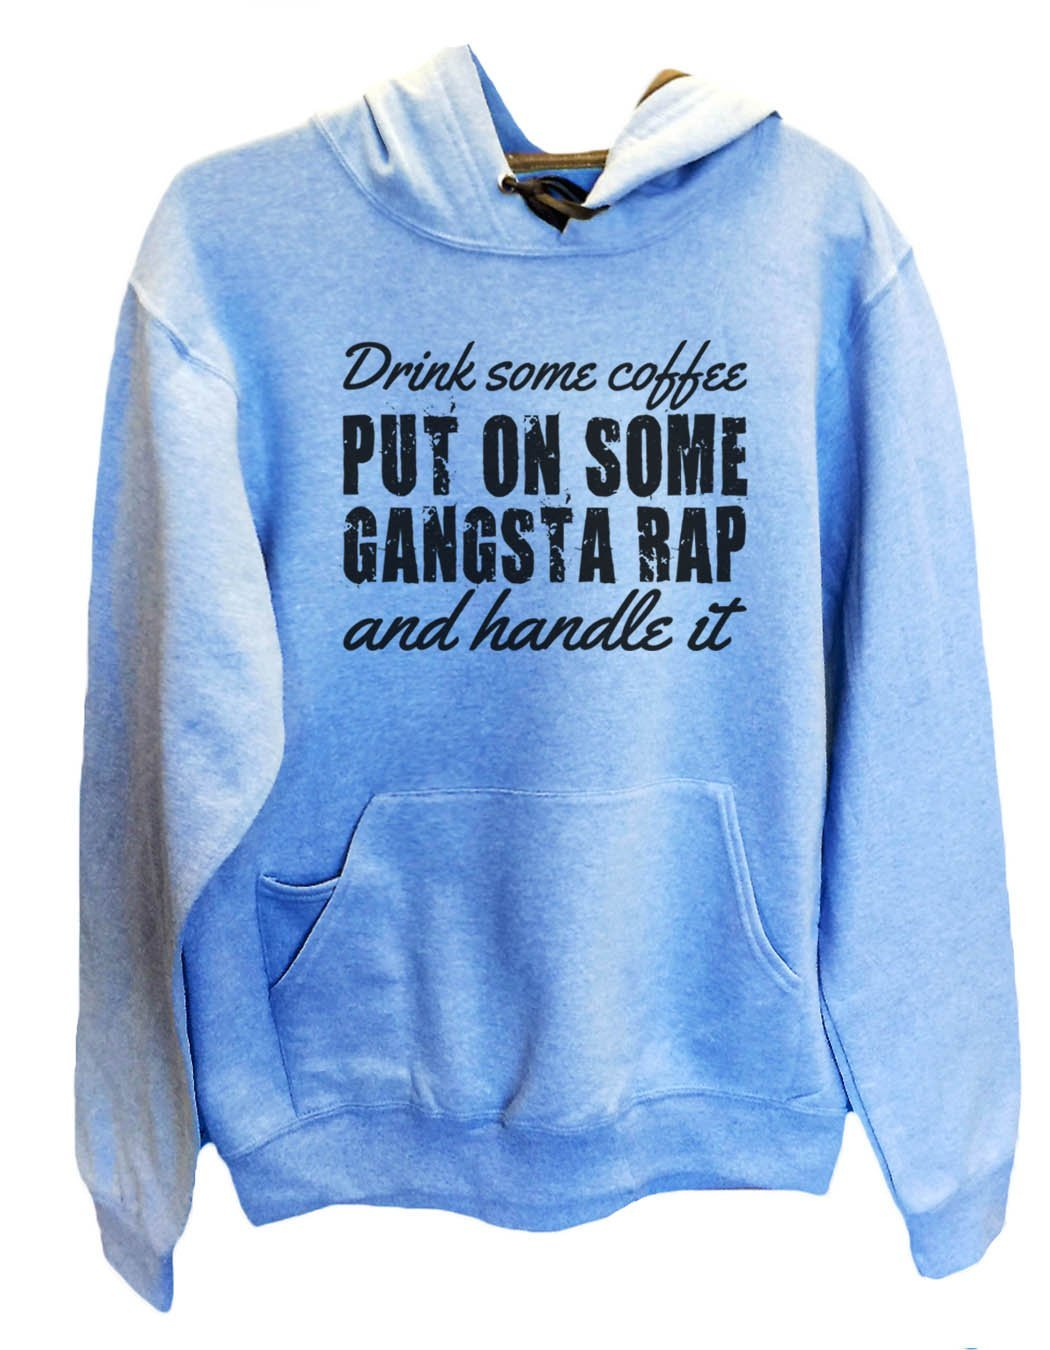 UNISEX HOODIE - Drink some coffee put on some gangsta rap and handle it - FUNNY MENS AND WOMENS HOODED SWEATSHIRTS - 956 Funny Shirt Small / North Carolina Blue